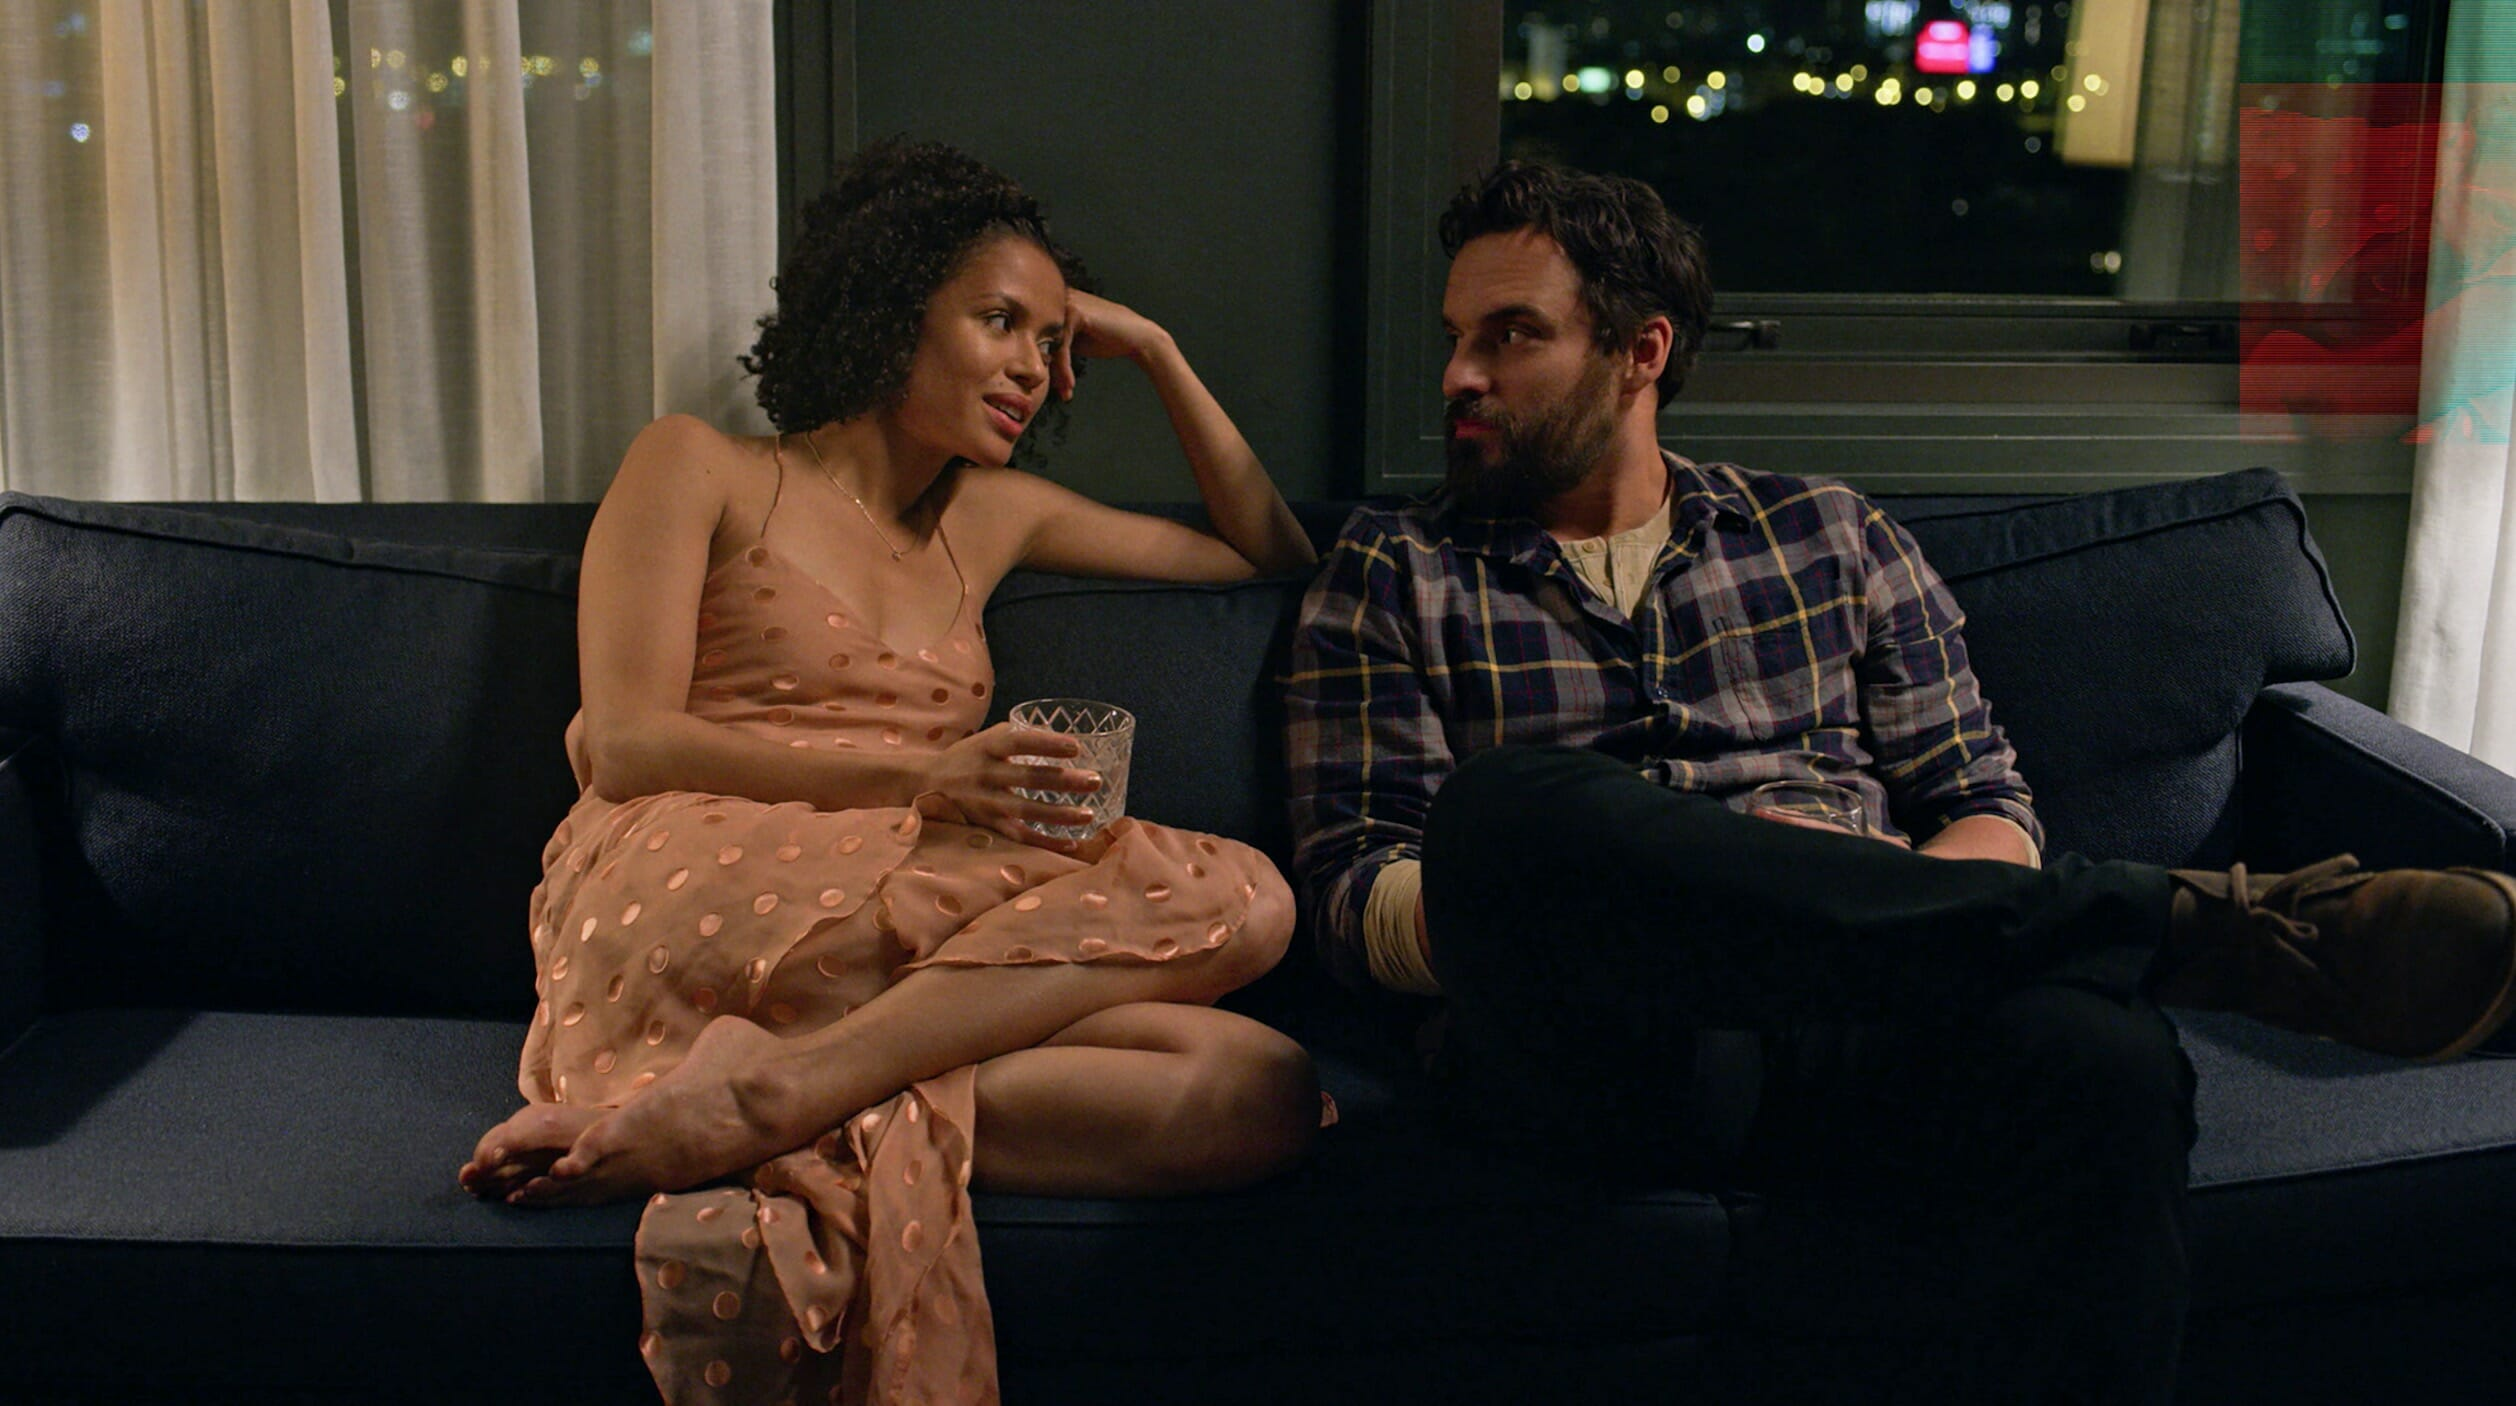 Review: Netflix's Easy Season 3 is Gloriously Small-Scale